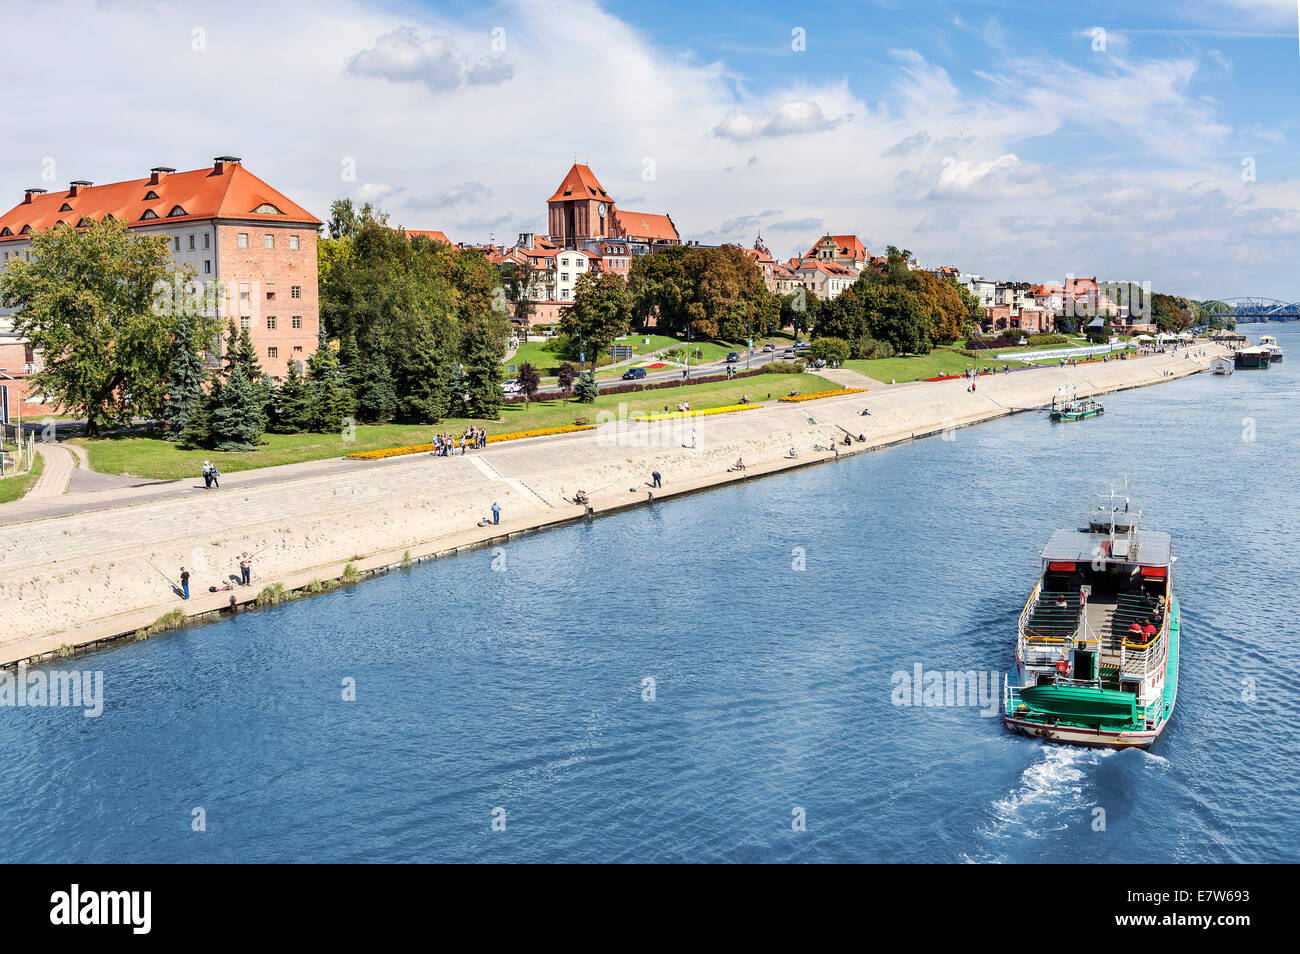 Torun city located on the Vistula river bank, Poland. - Stock Image